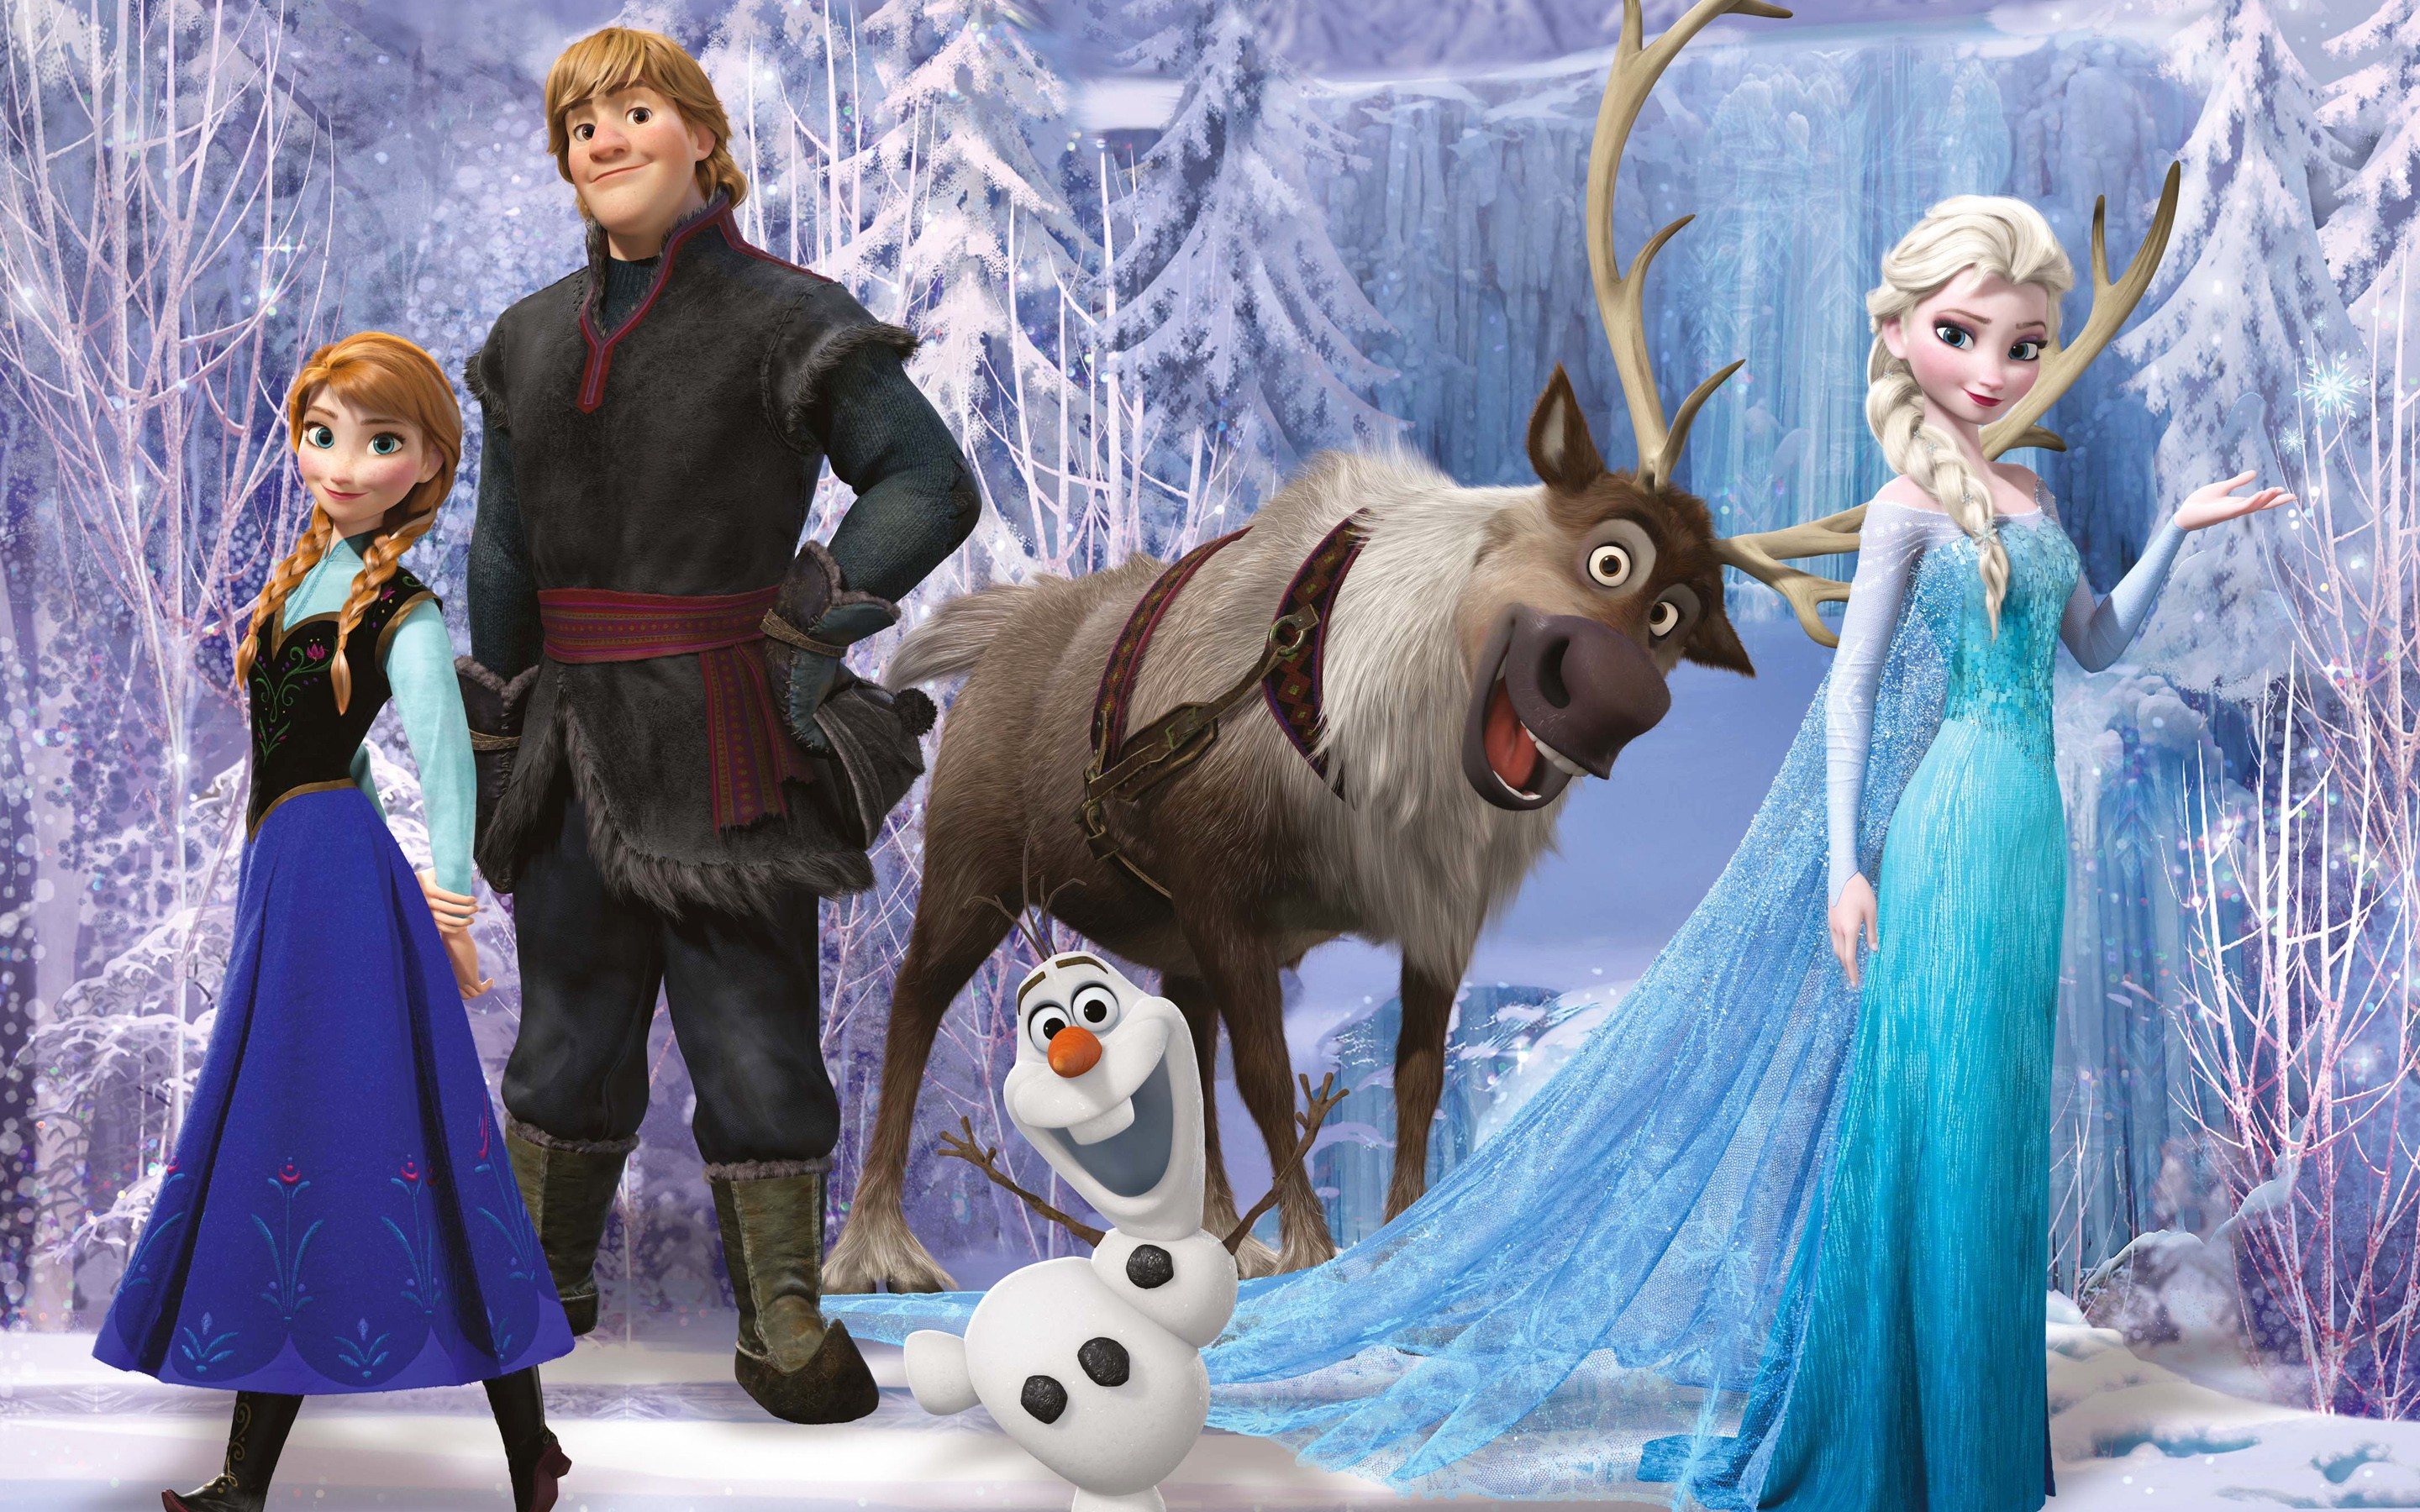 frozen movie 2, hd movies, 4k wallpapers, images, backgrounds